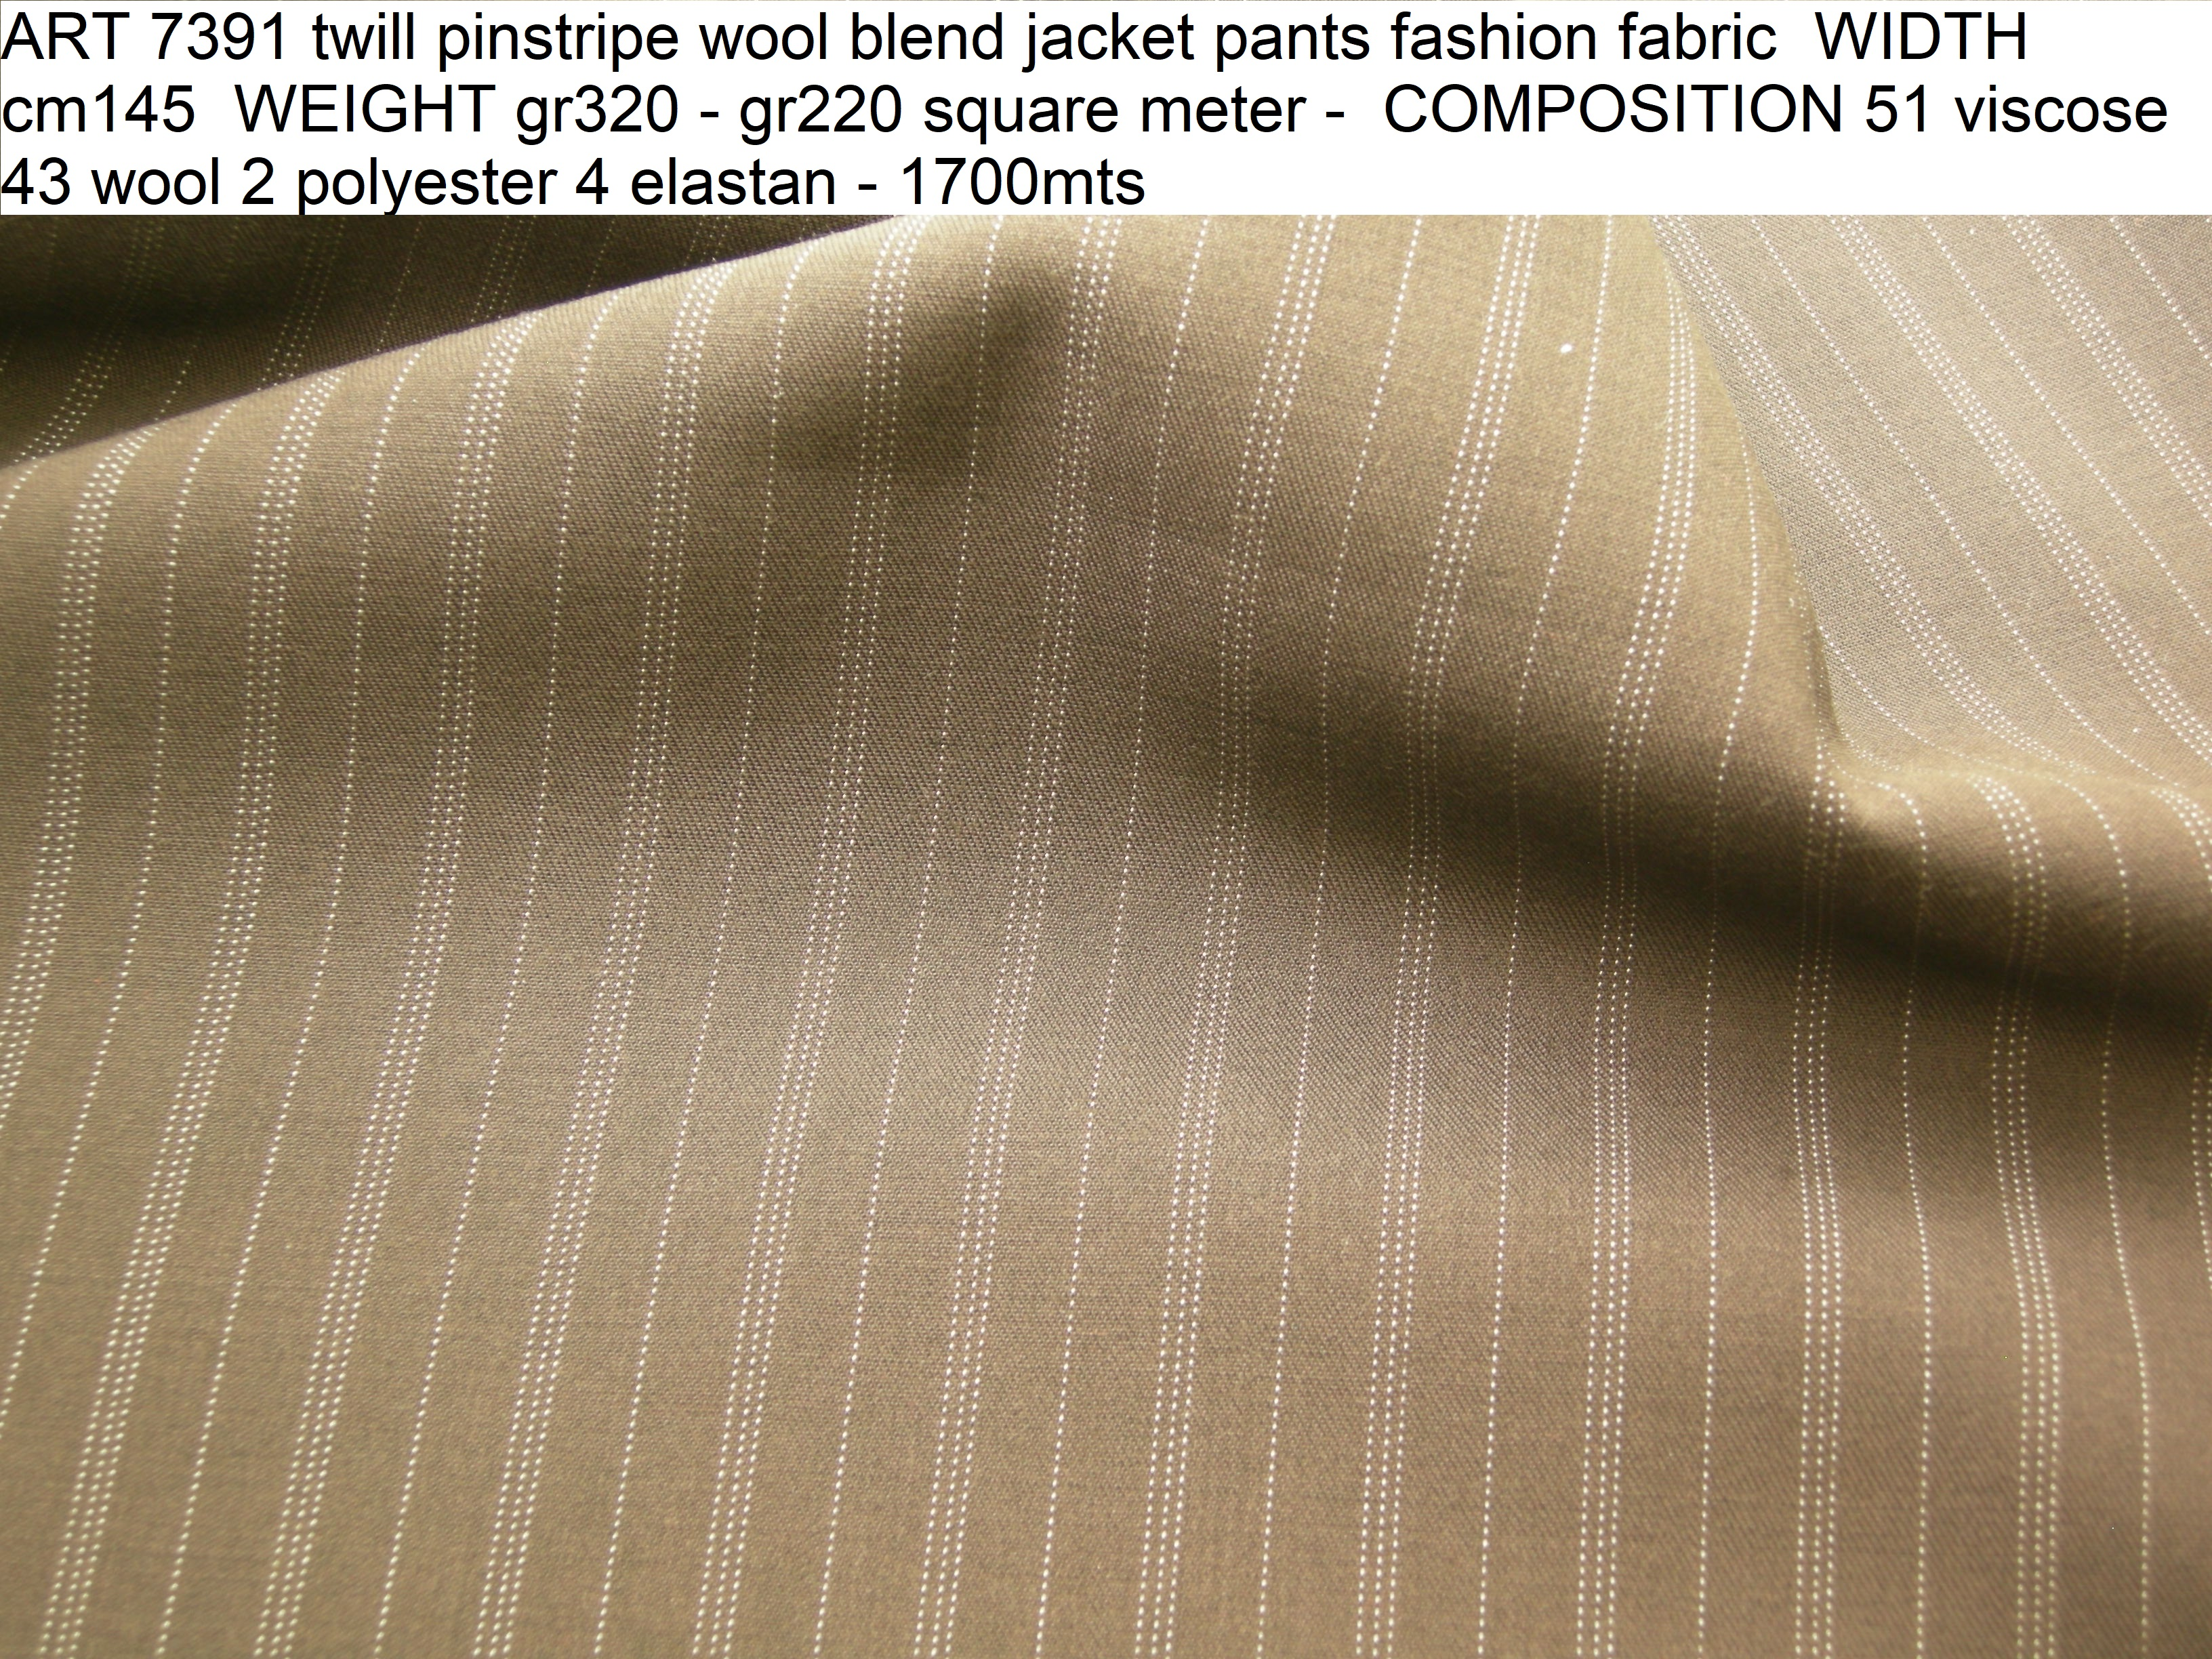 ART 7391 twill pinstripe wool blend jacket pants fashion fabric WIDTH cm145 WEIGHT gr320 - gr220 square meter - COMPOSITION 51 viscose 43 wool 2 polyester 4 elastan - 1700mts